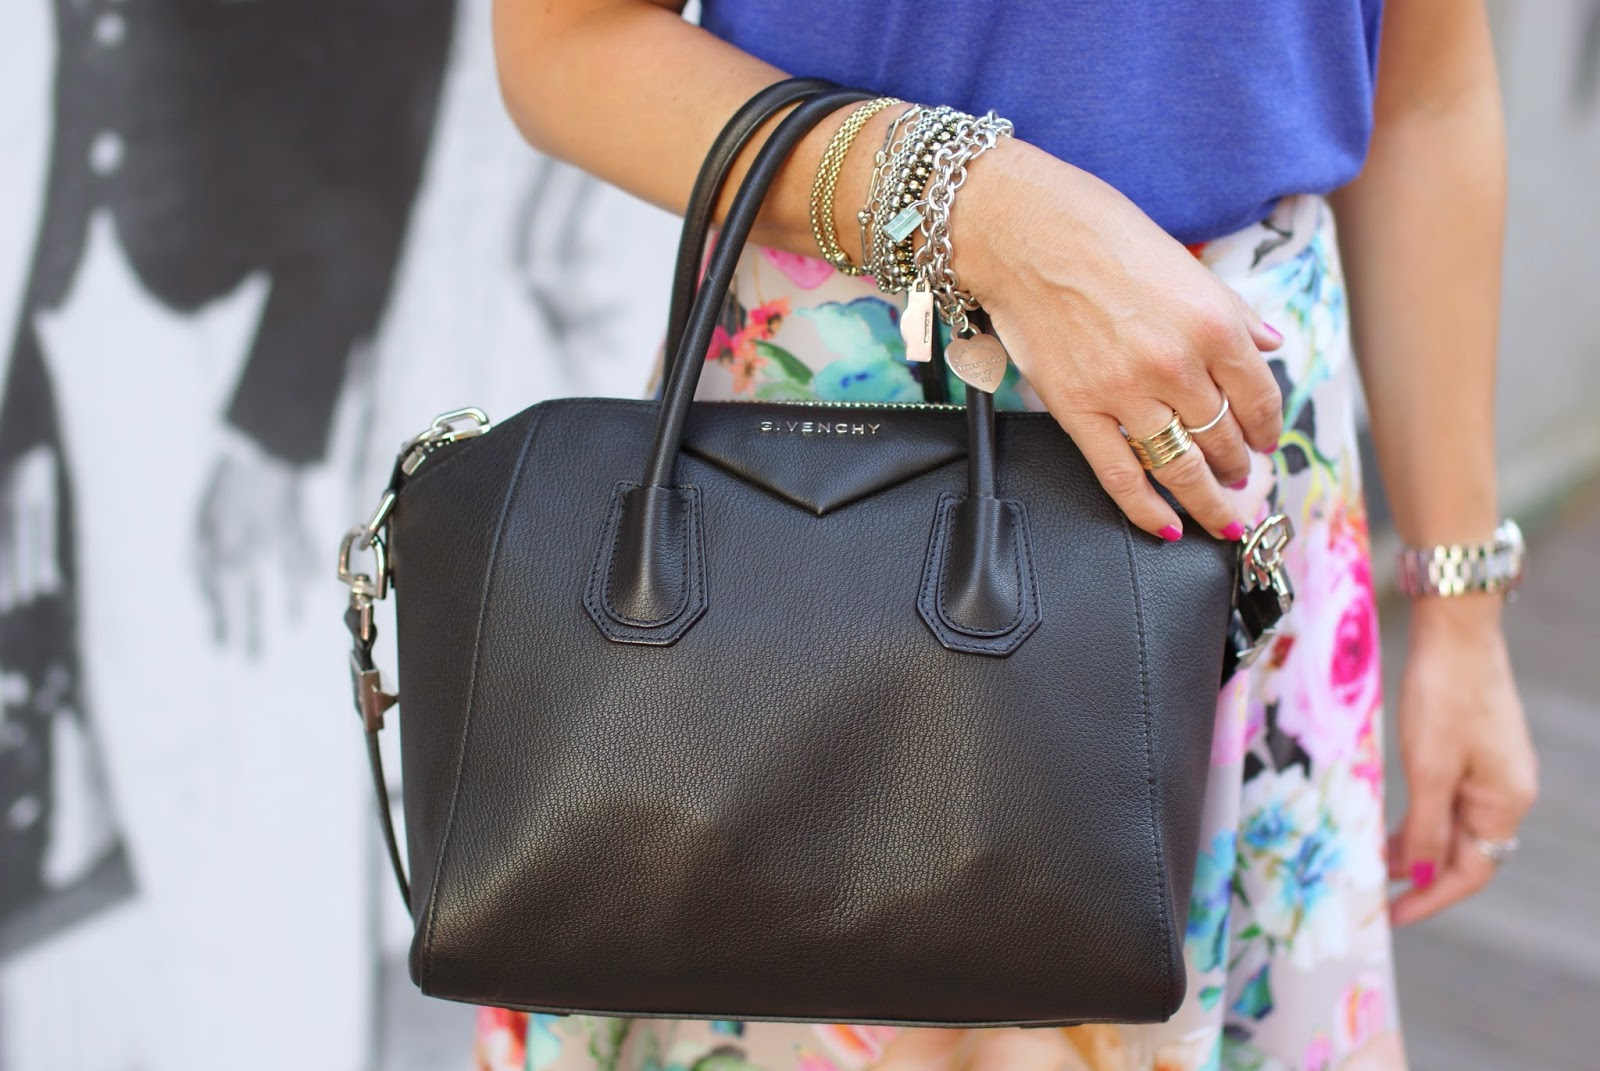 Givenchy Antigona bag, Fashion and Cookies, fashion blogger